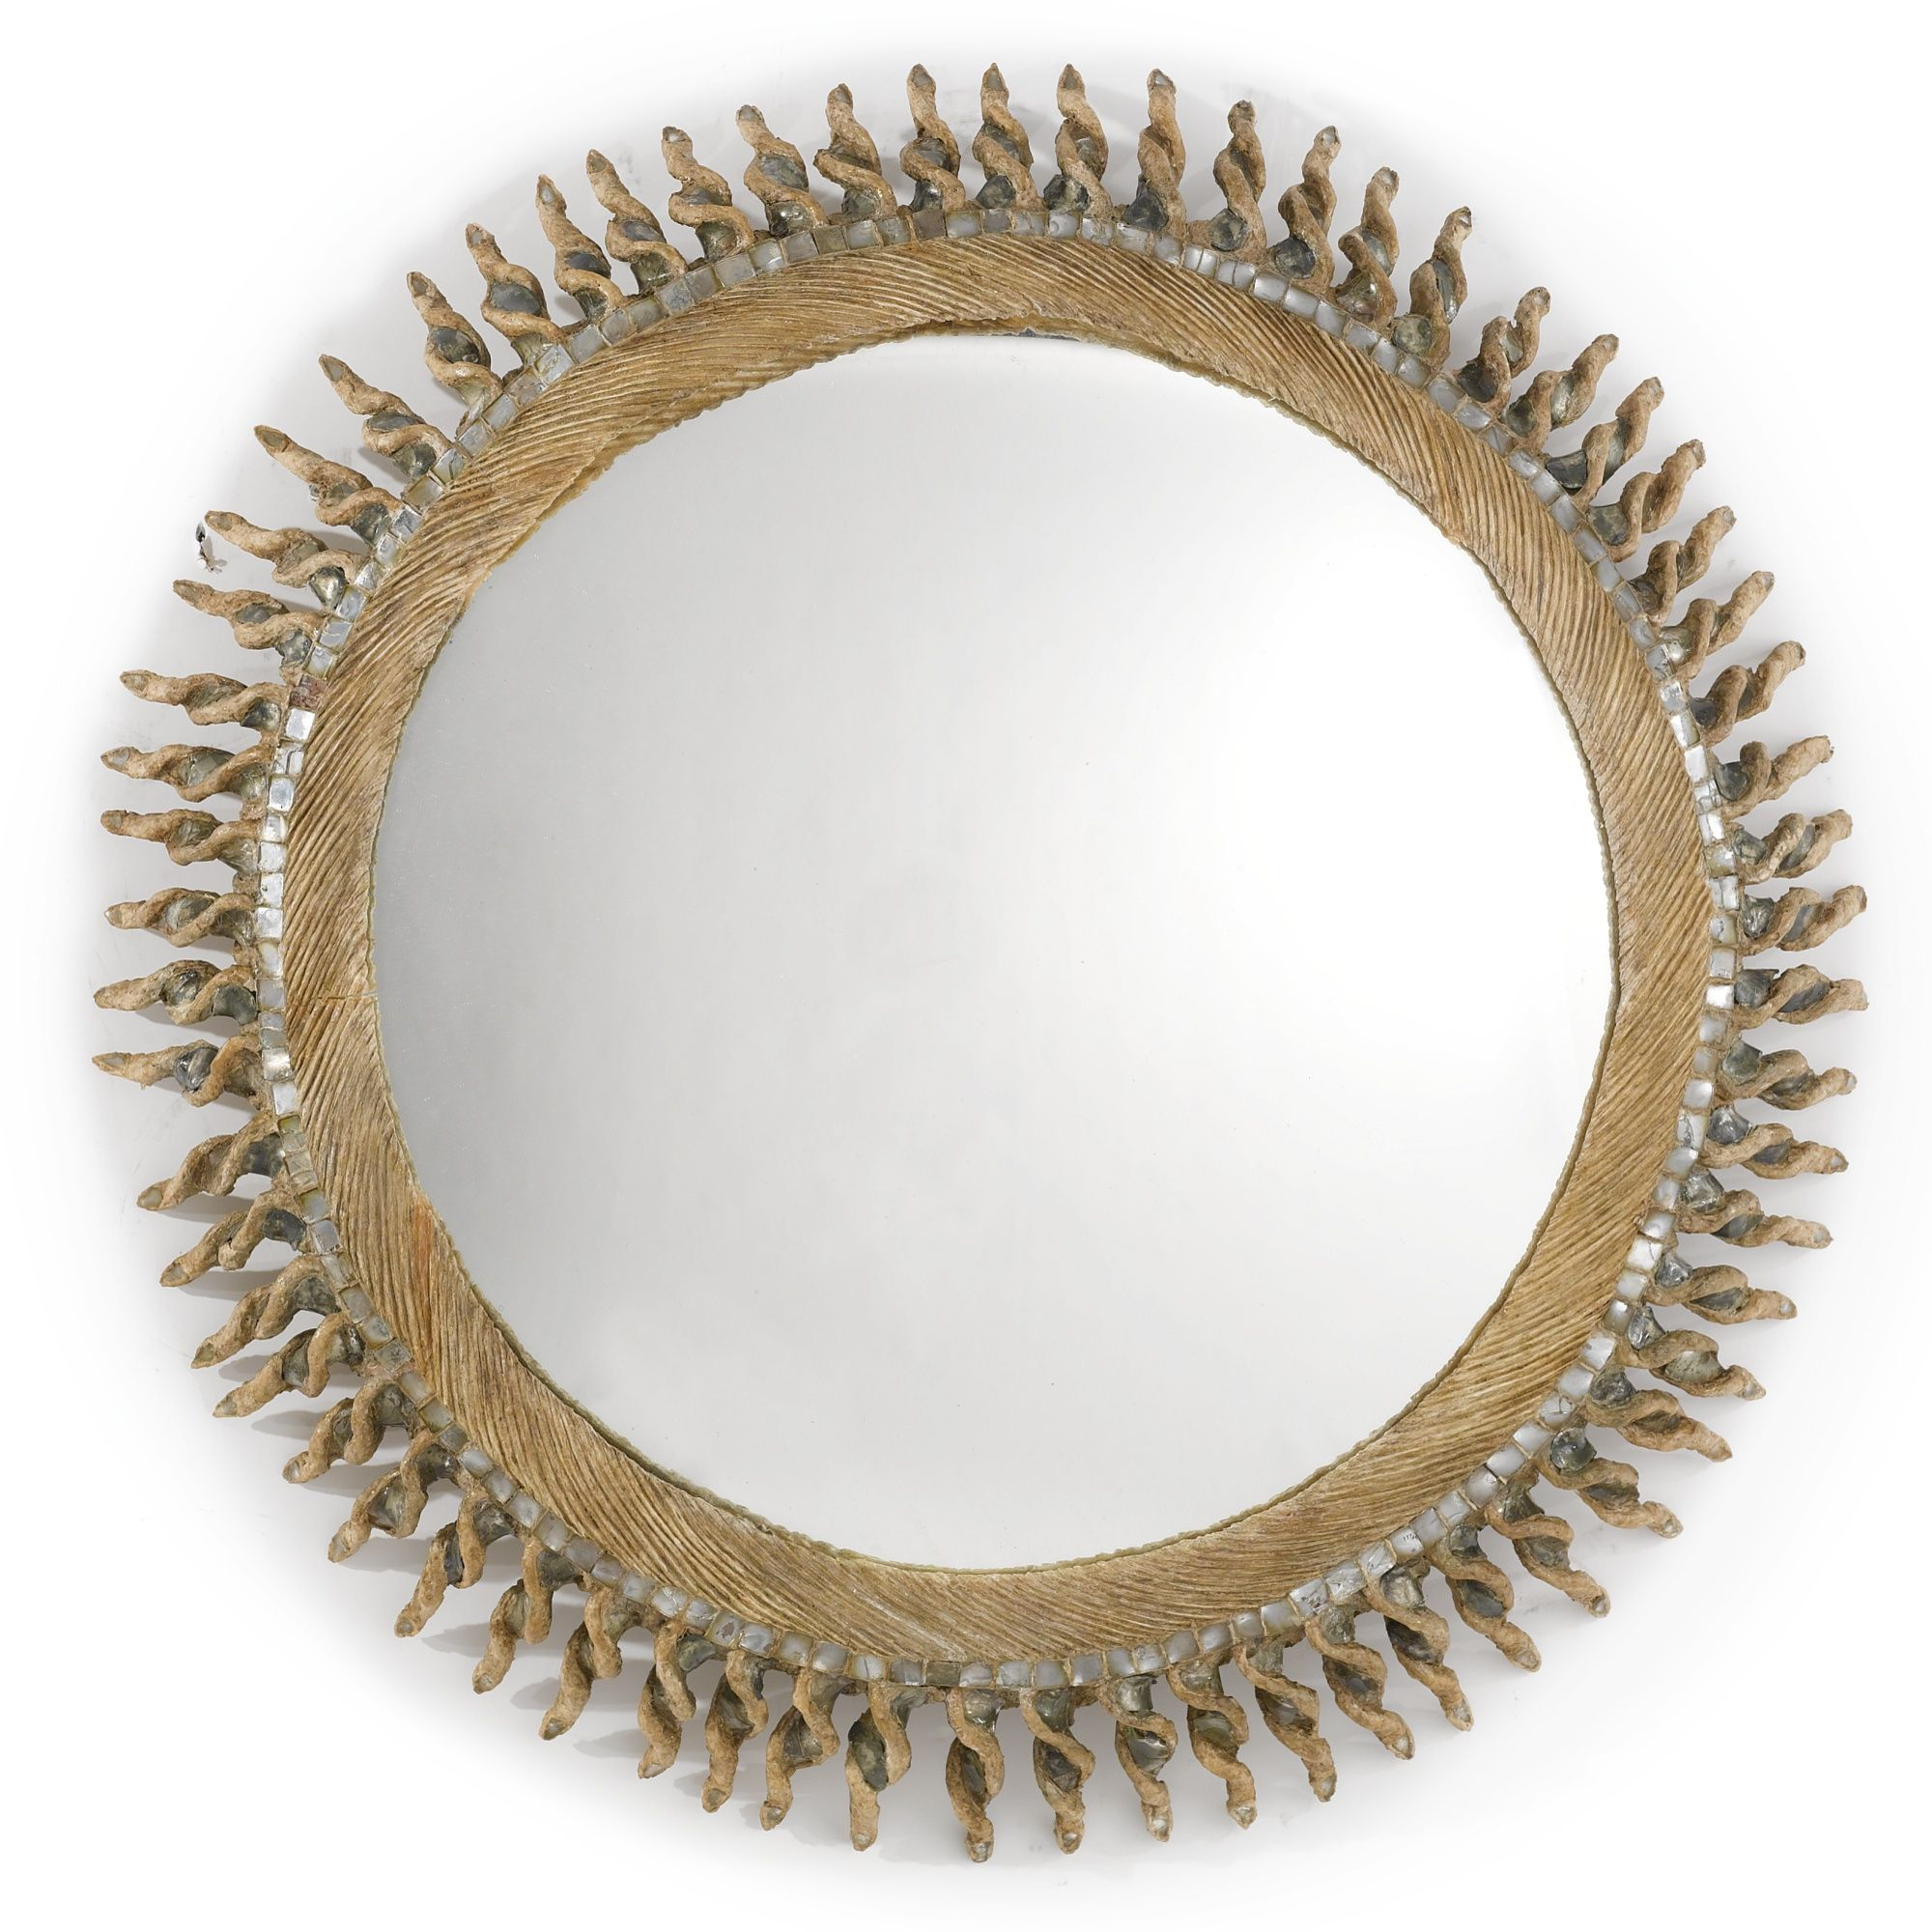 Line Vautrin Torsade Mirror Incised Line Vautrin Talosel And Mirroed Glass 31 1 2 In 80 Cm Diameter Circa 1960 Vautrin Miroir Mural Miroir Convexe